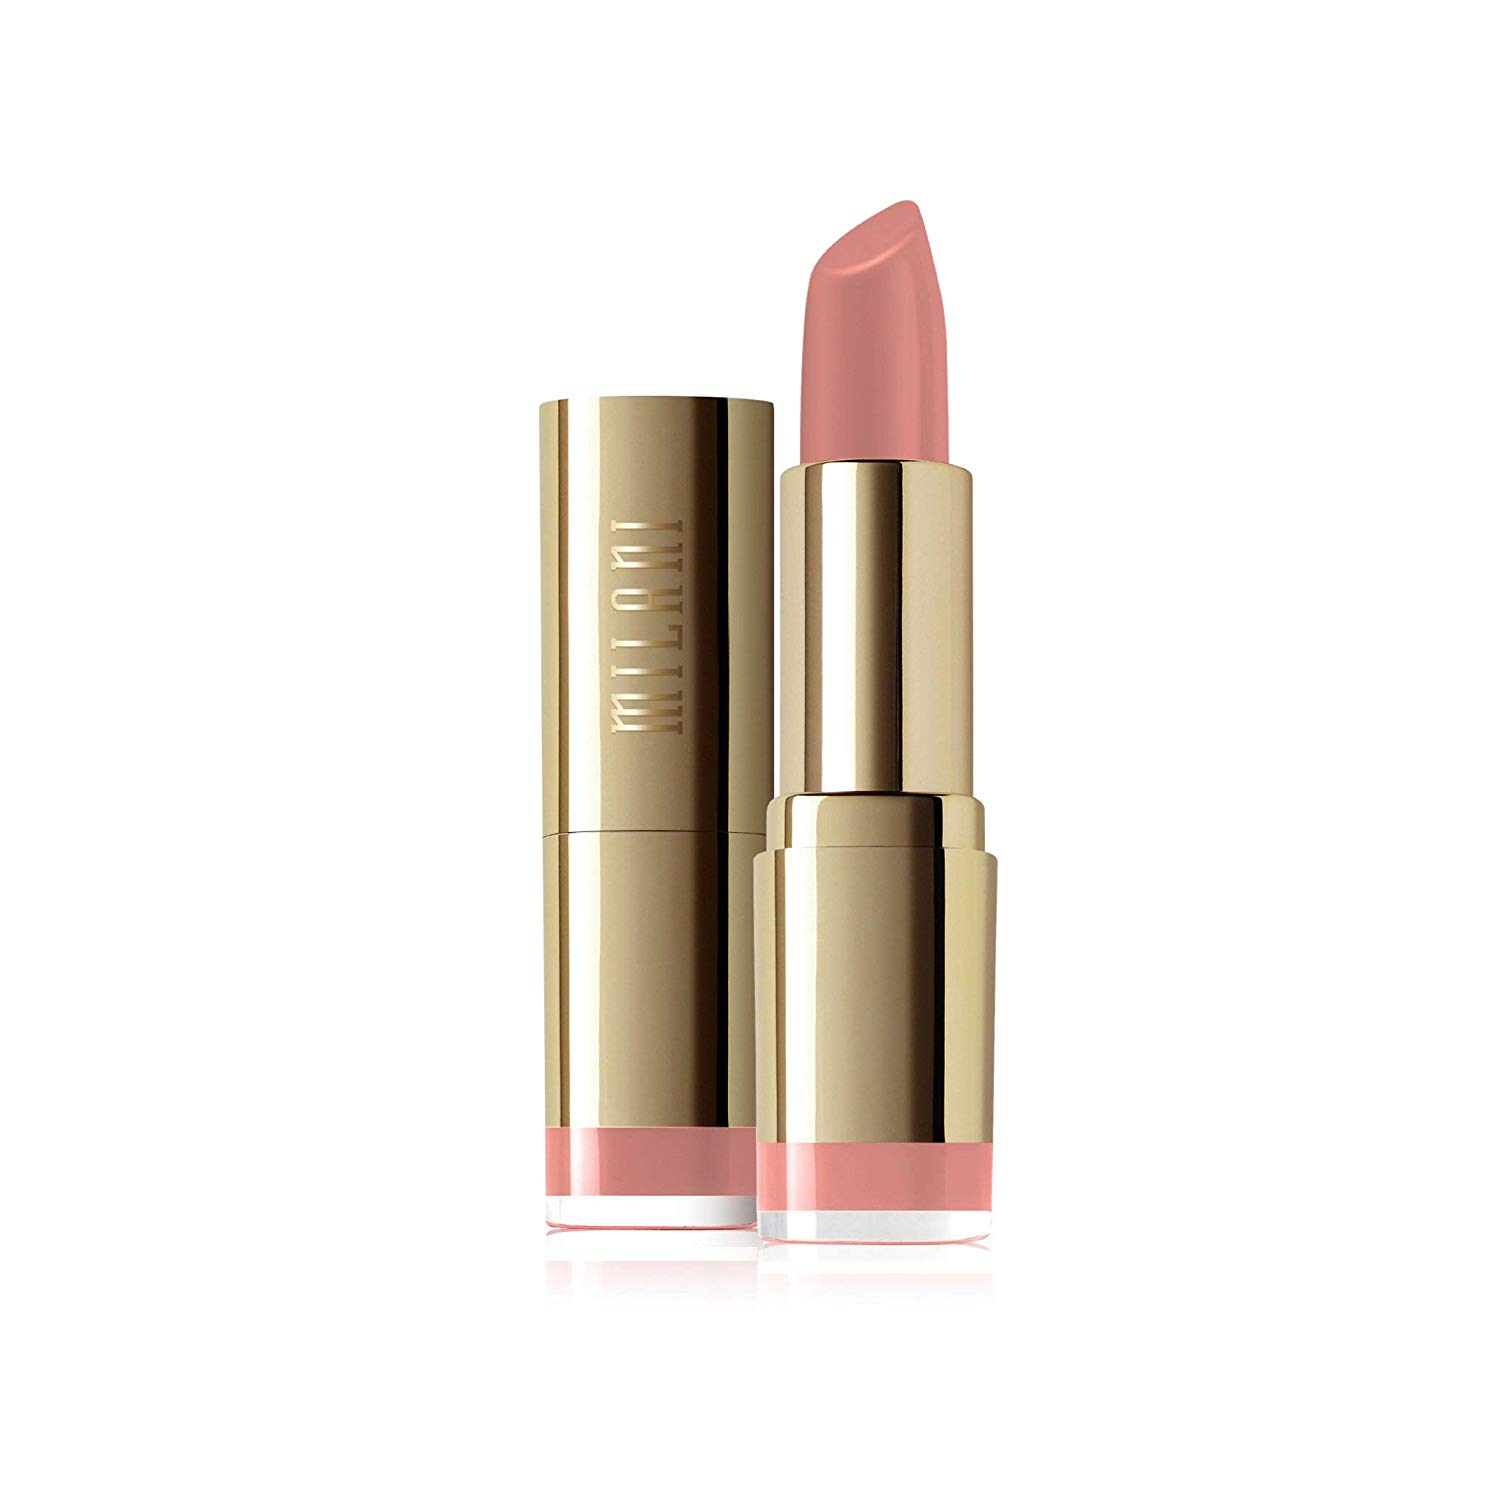 Milani Color Statement Matte Lipstick in Matte Naked